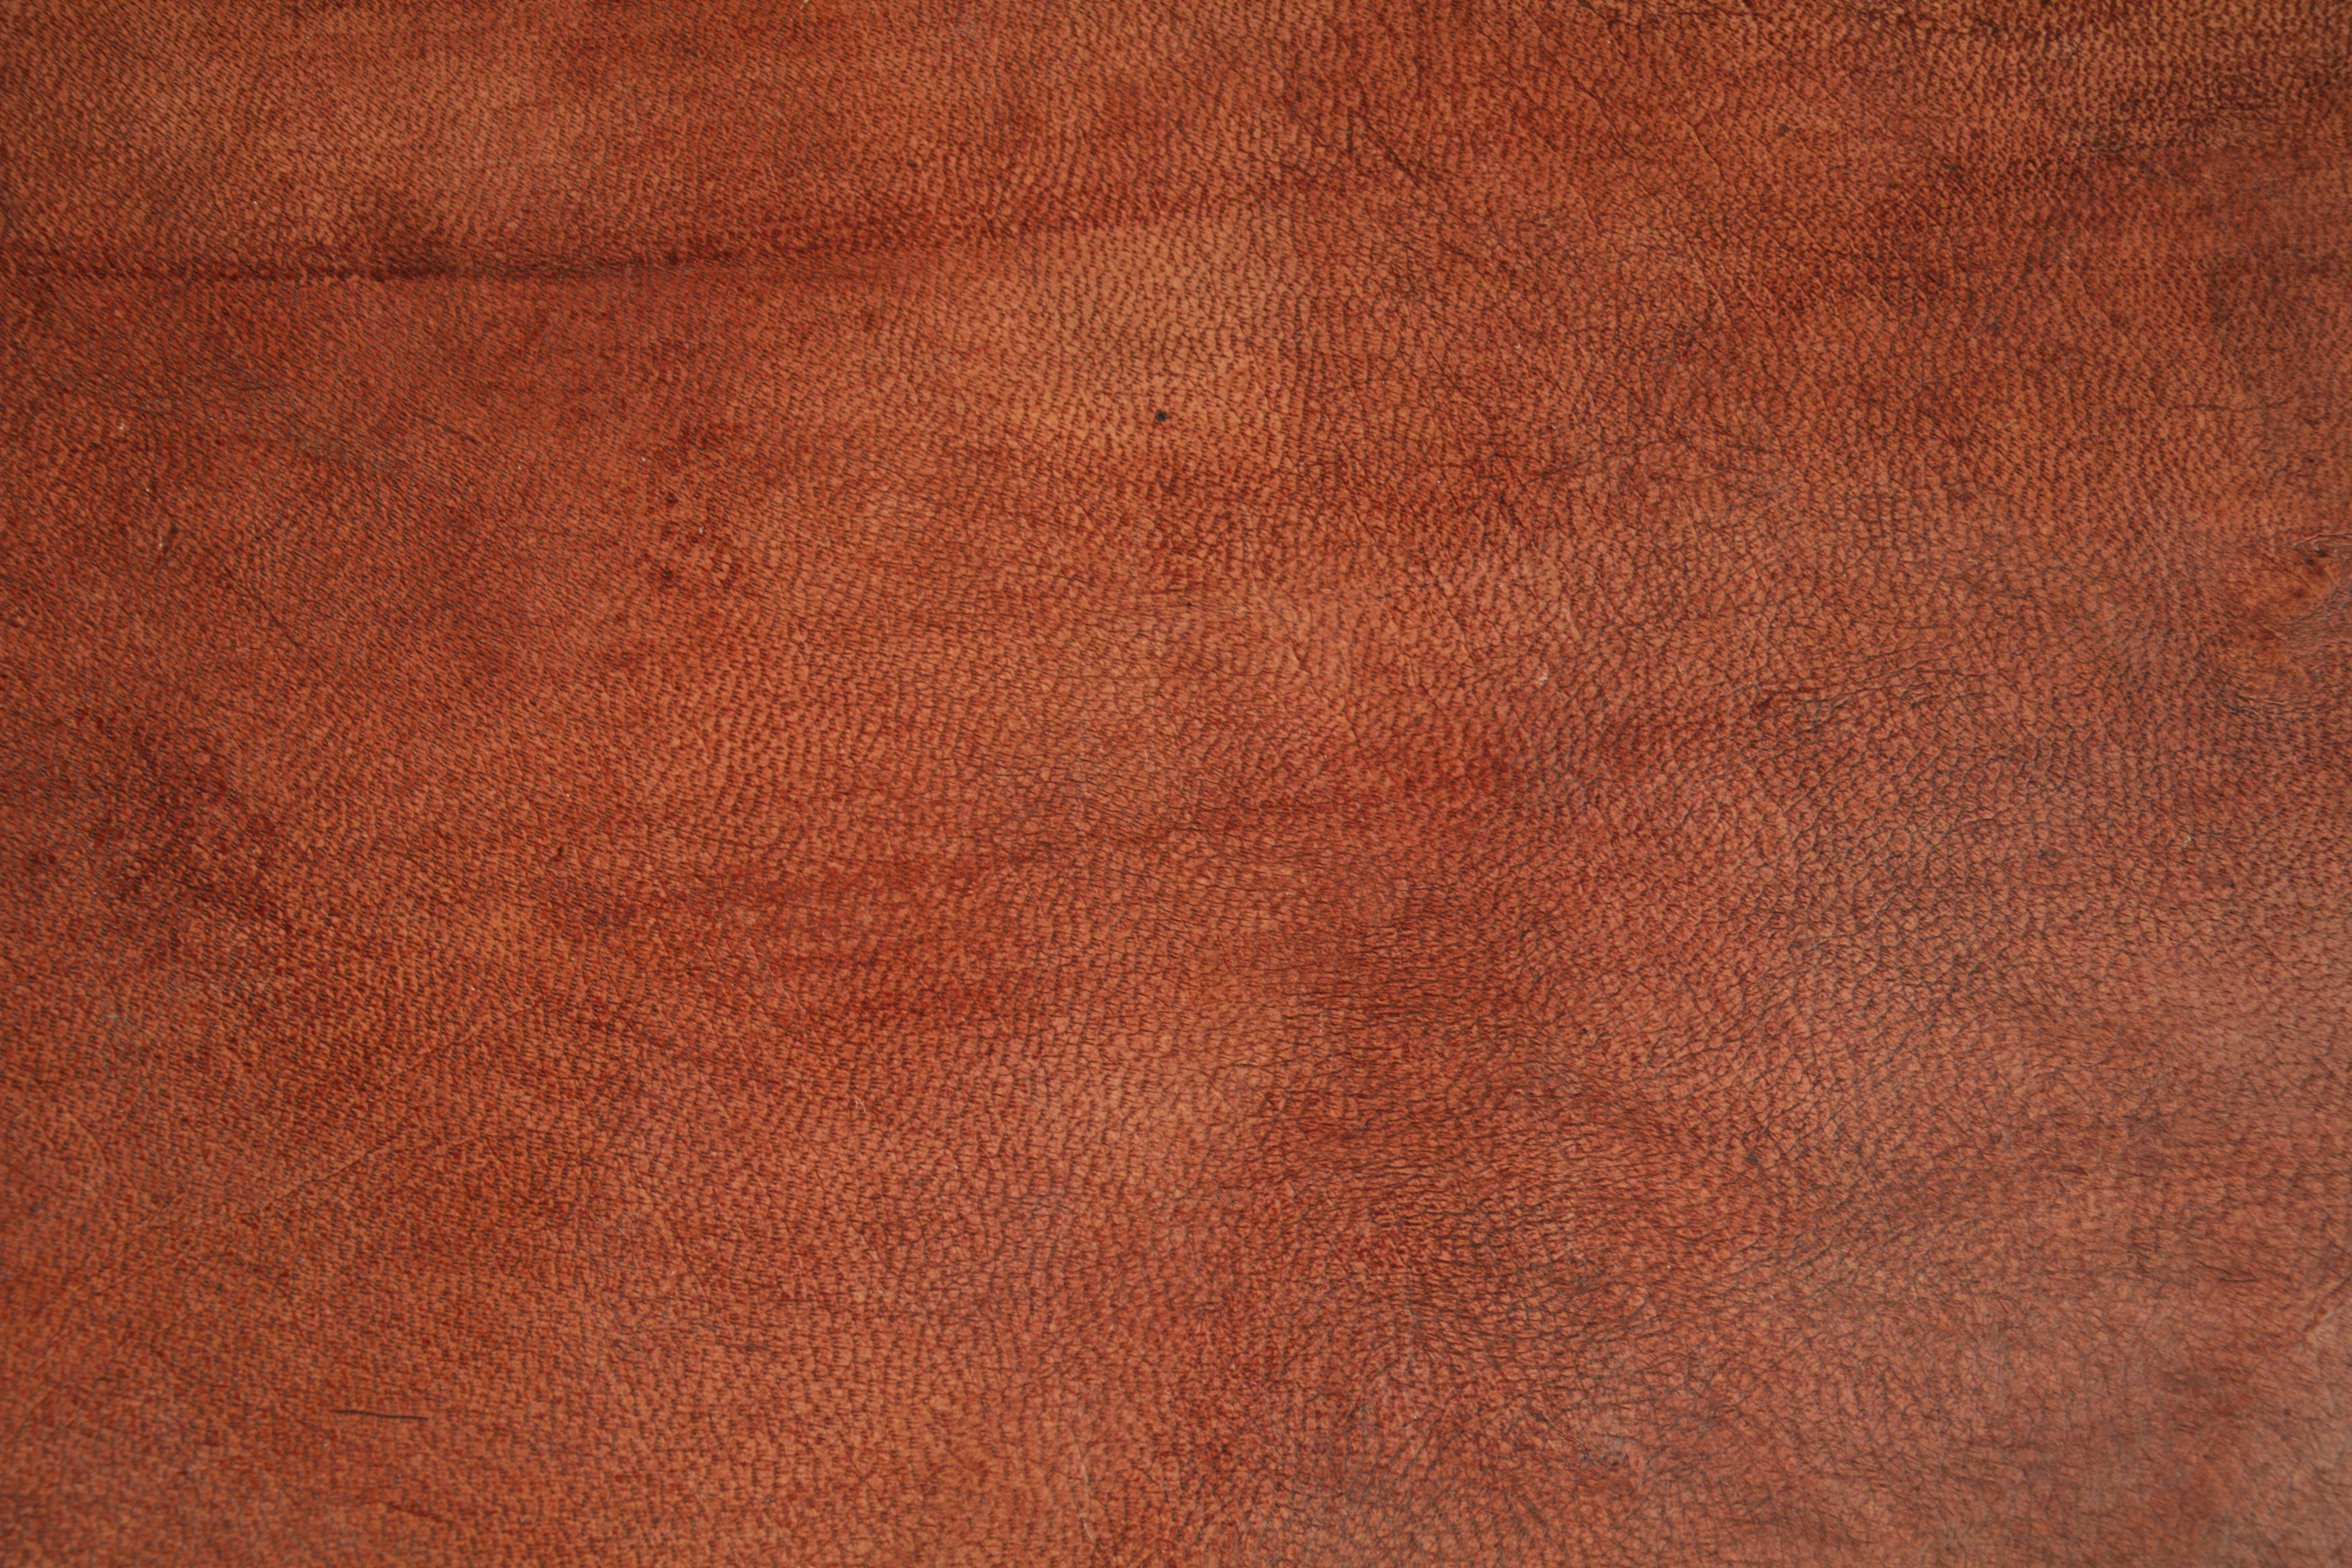 Free Photo Brown Leather Texture Grainy Isolated